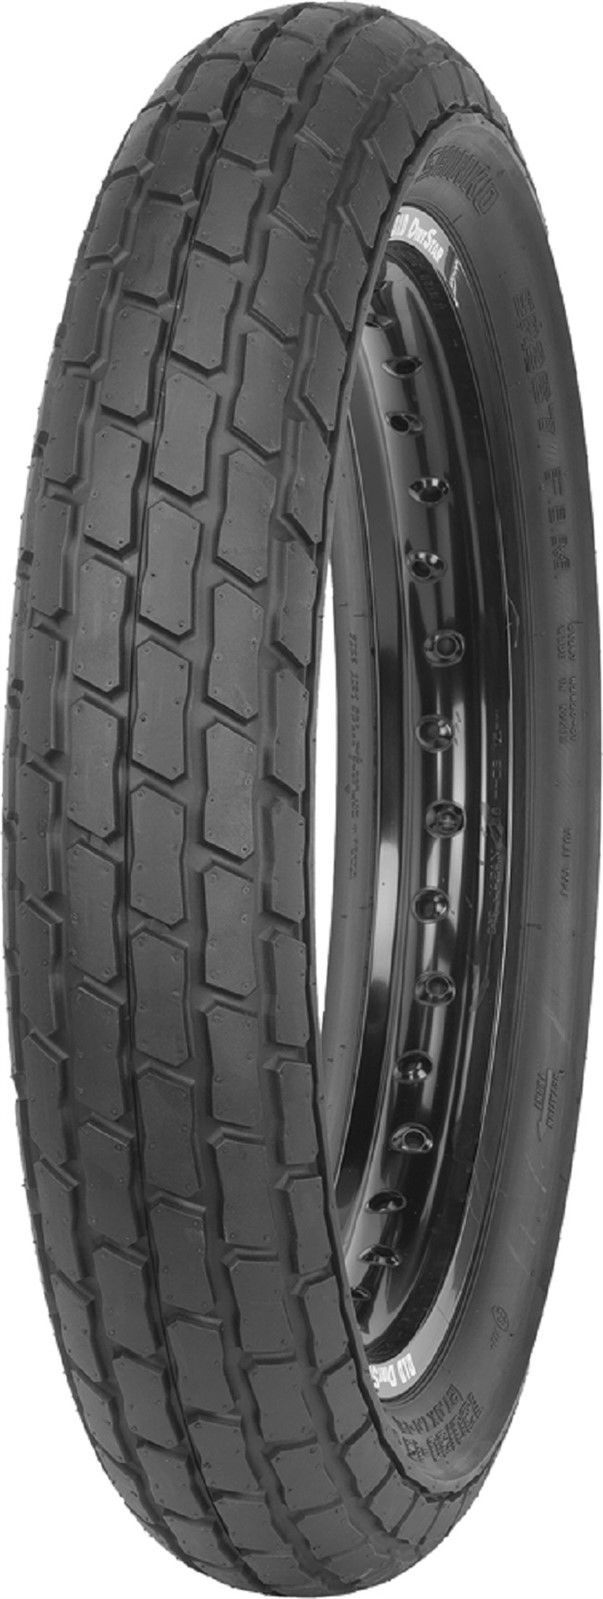 New Shinko SR267 Front 130/80-19 Medium Compound Flat Track Racing  67H DOT